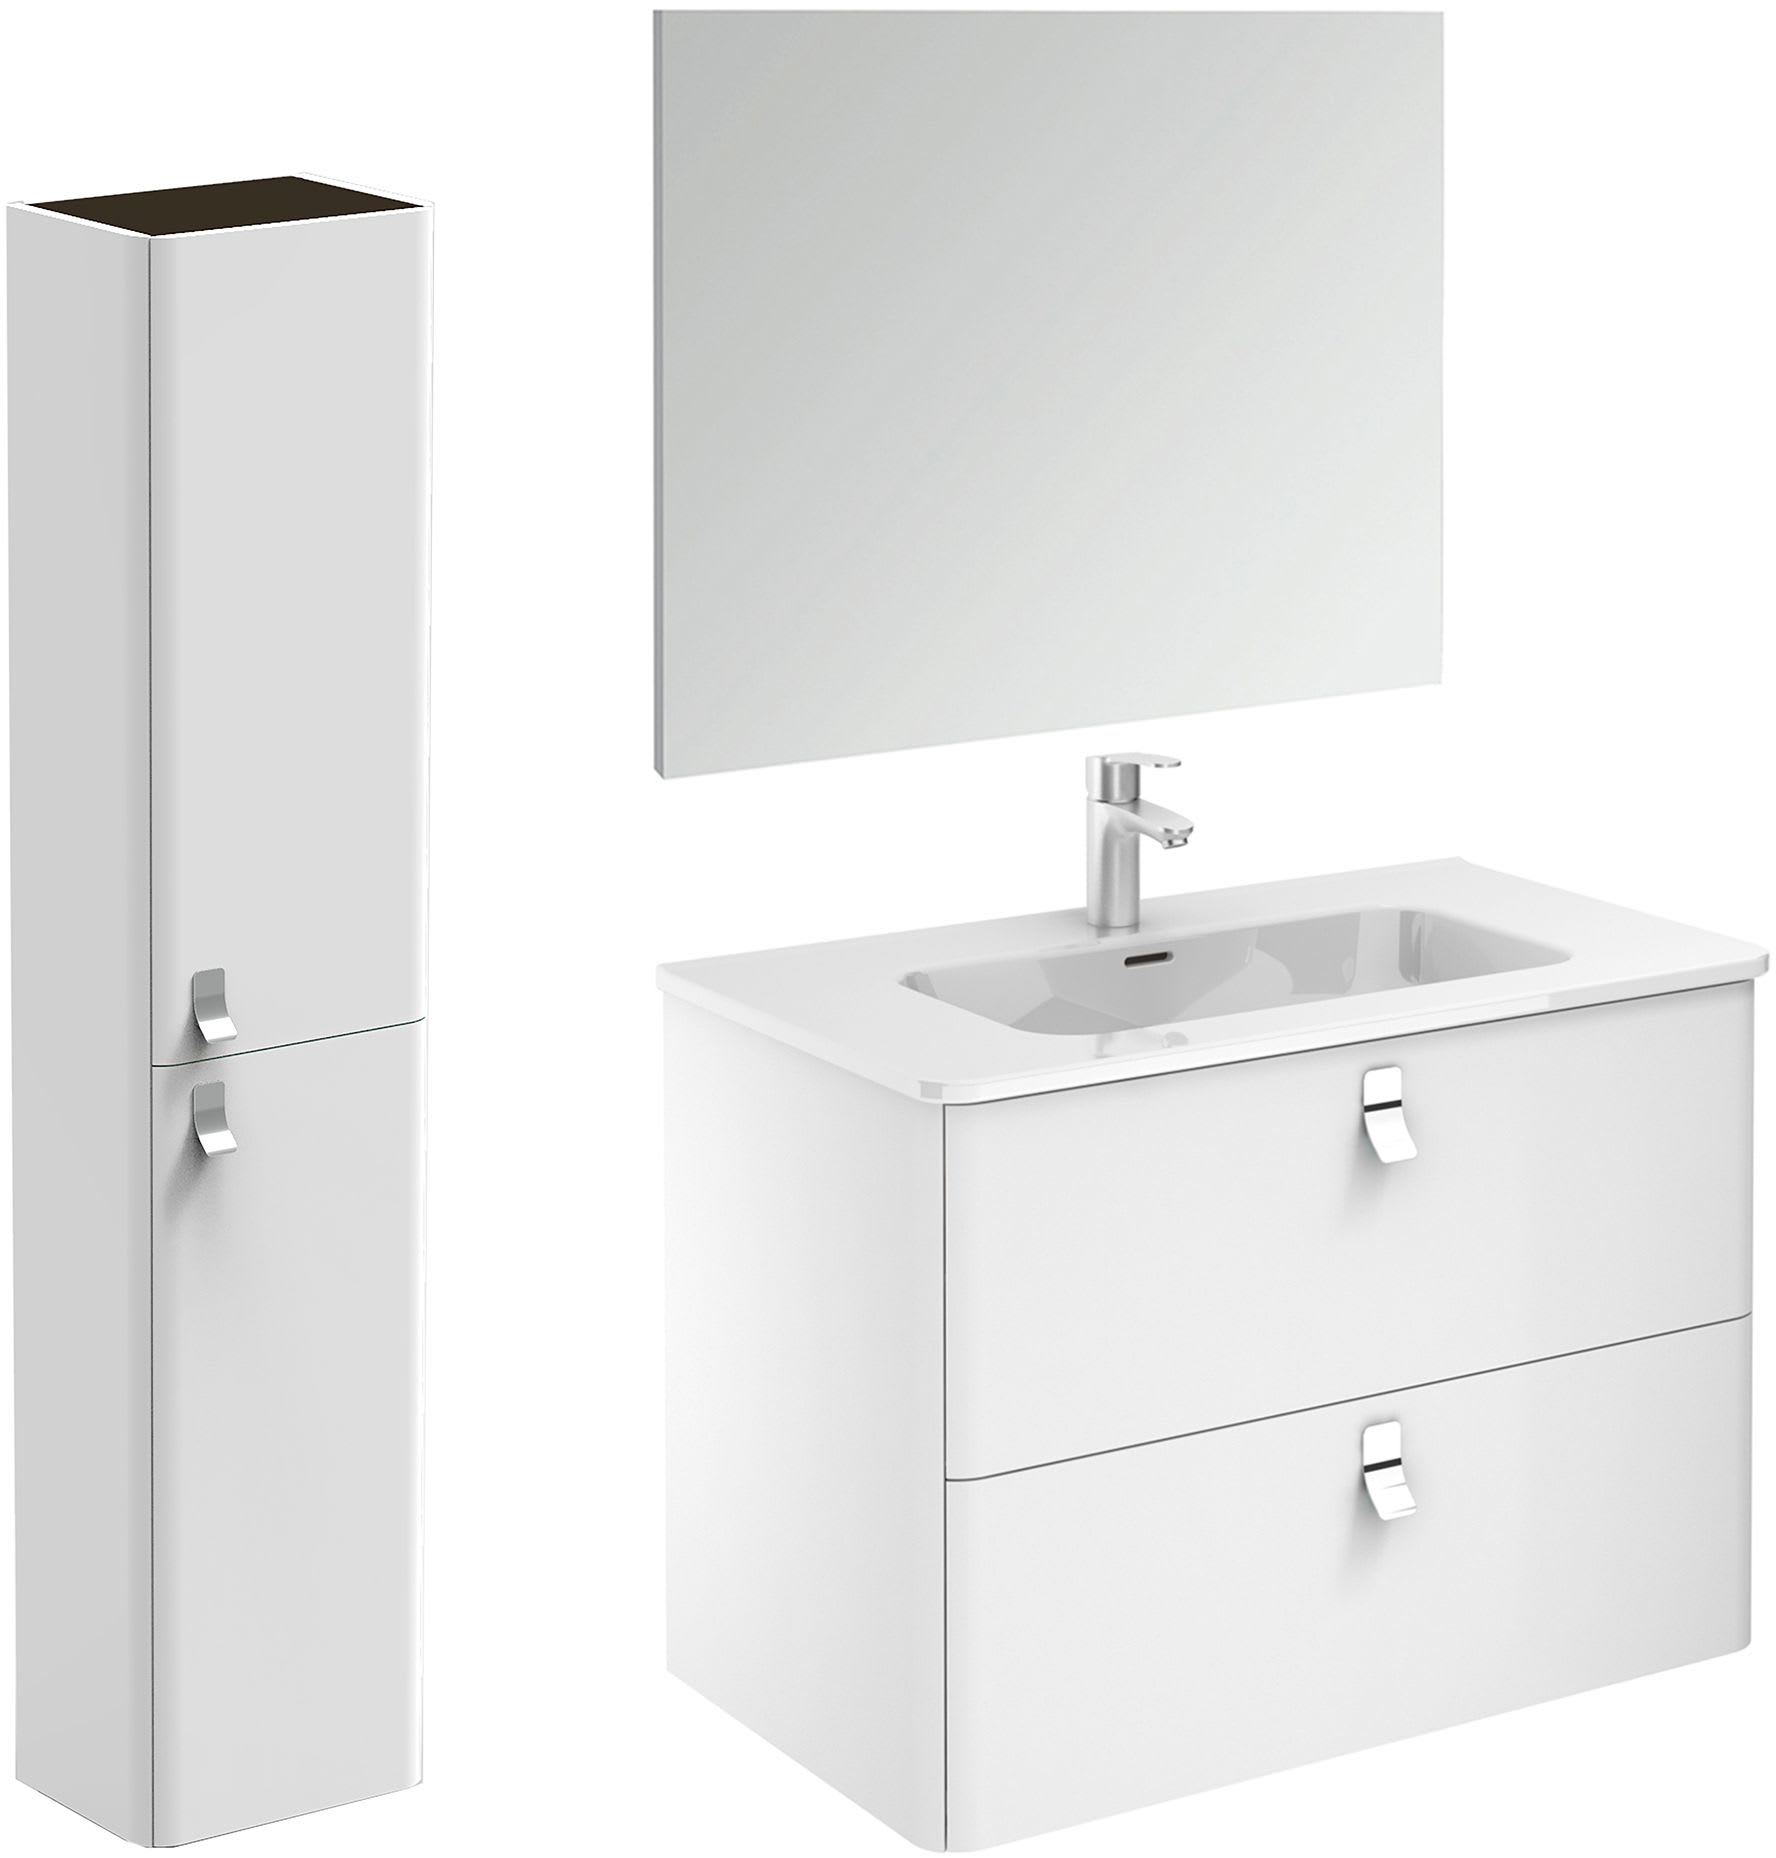 Ws Bath Collections Concert 80 Pack 2 Wg Gloss White Concert 32 Wall Mounted Single Basin Vanity Set With Engineered Wood Cabinet Ceramic Vanity Top And Frameless Mirror Faucetdirect Com